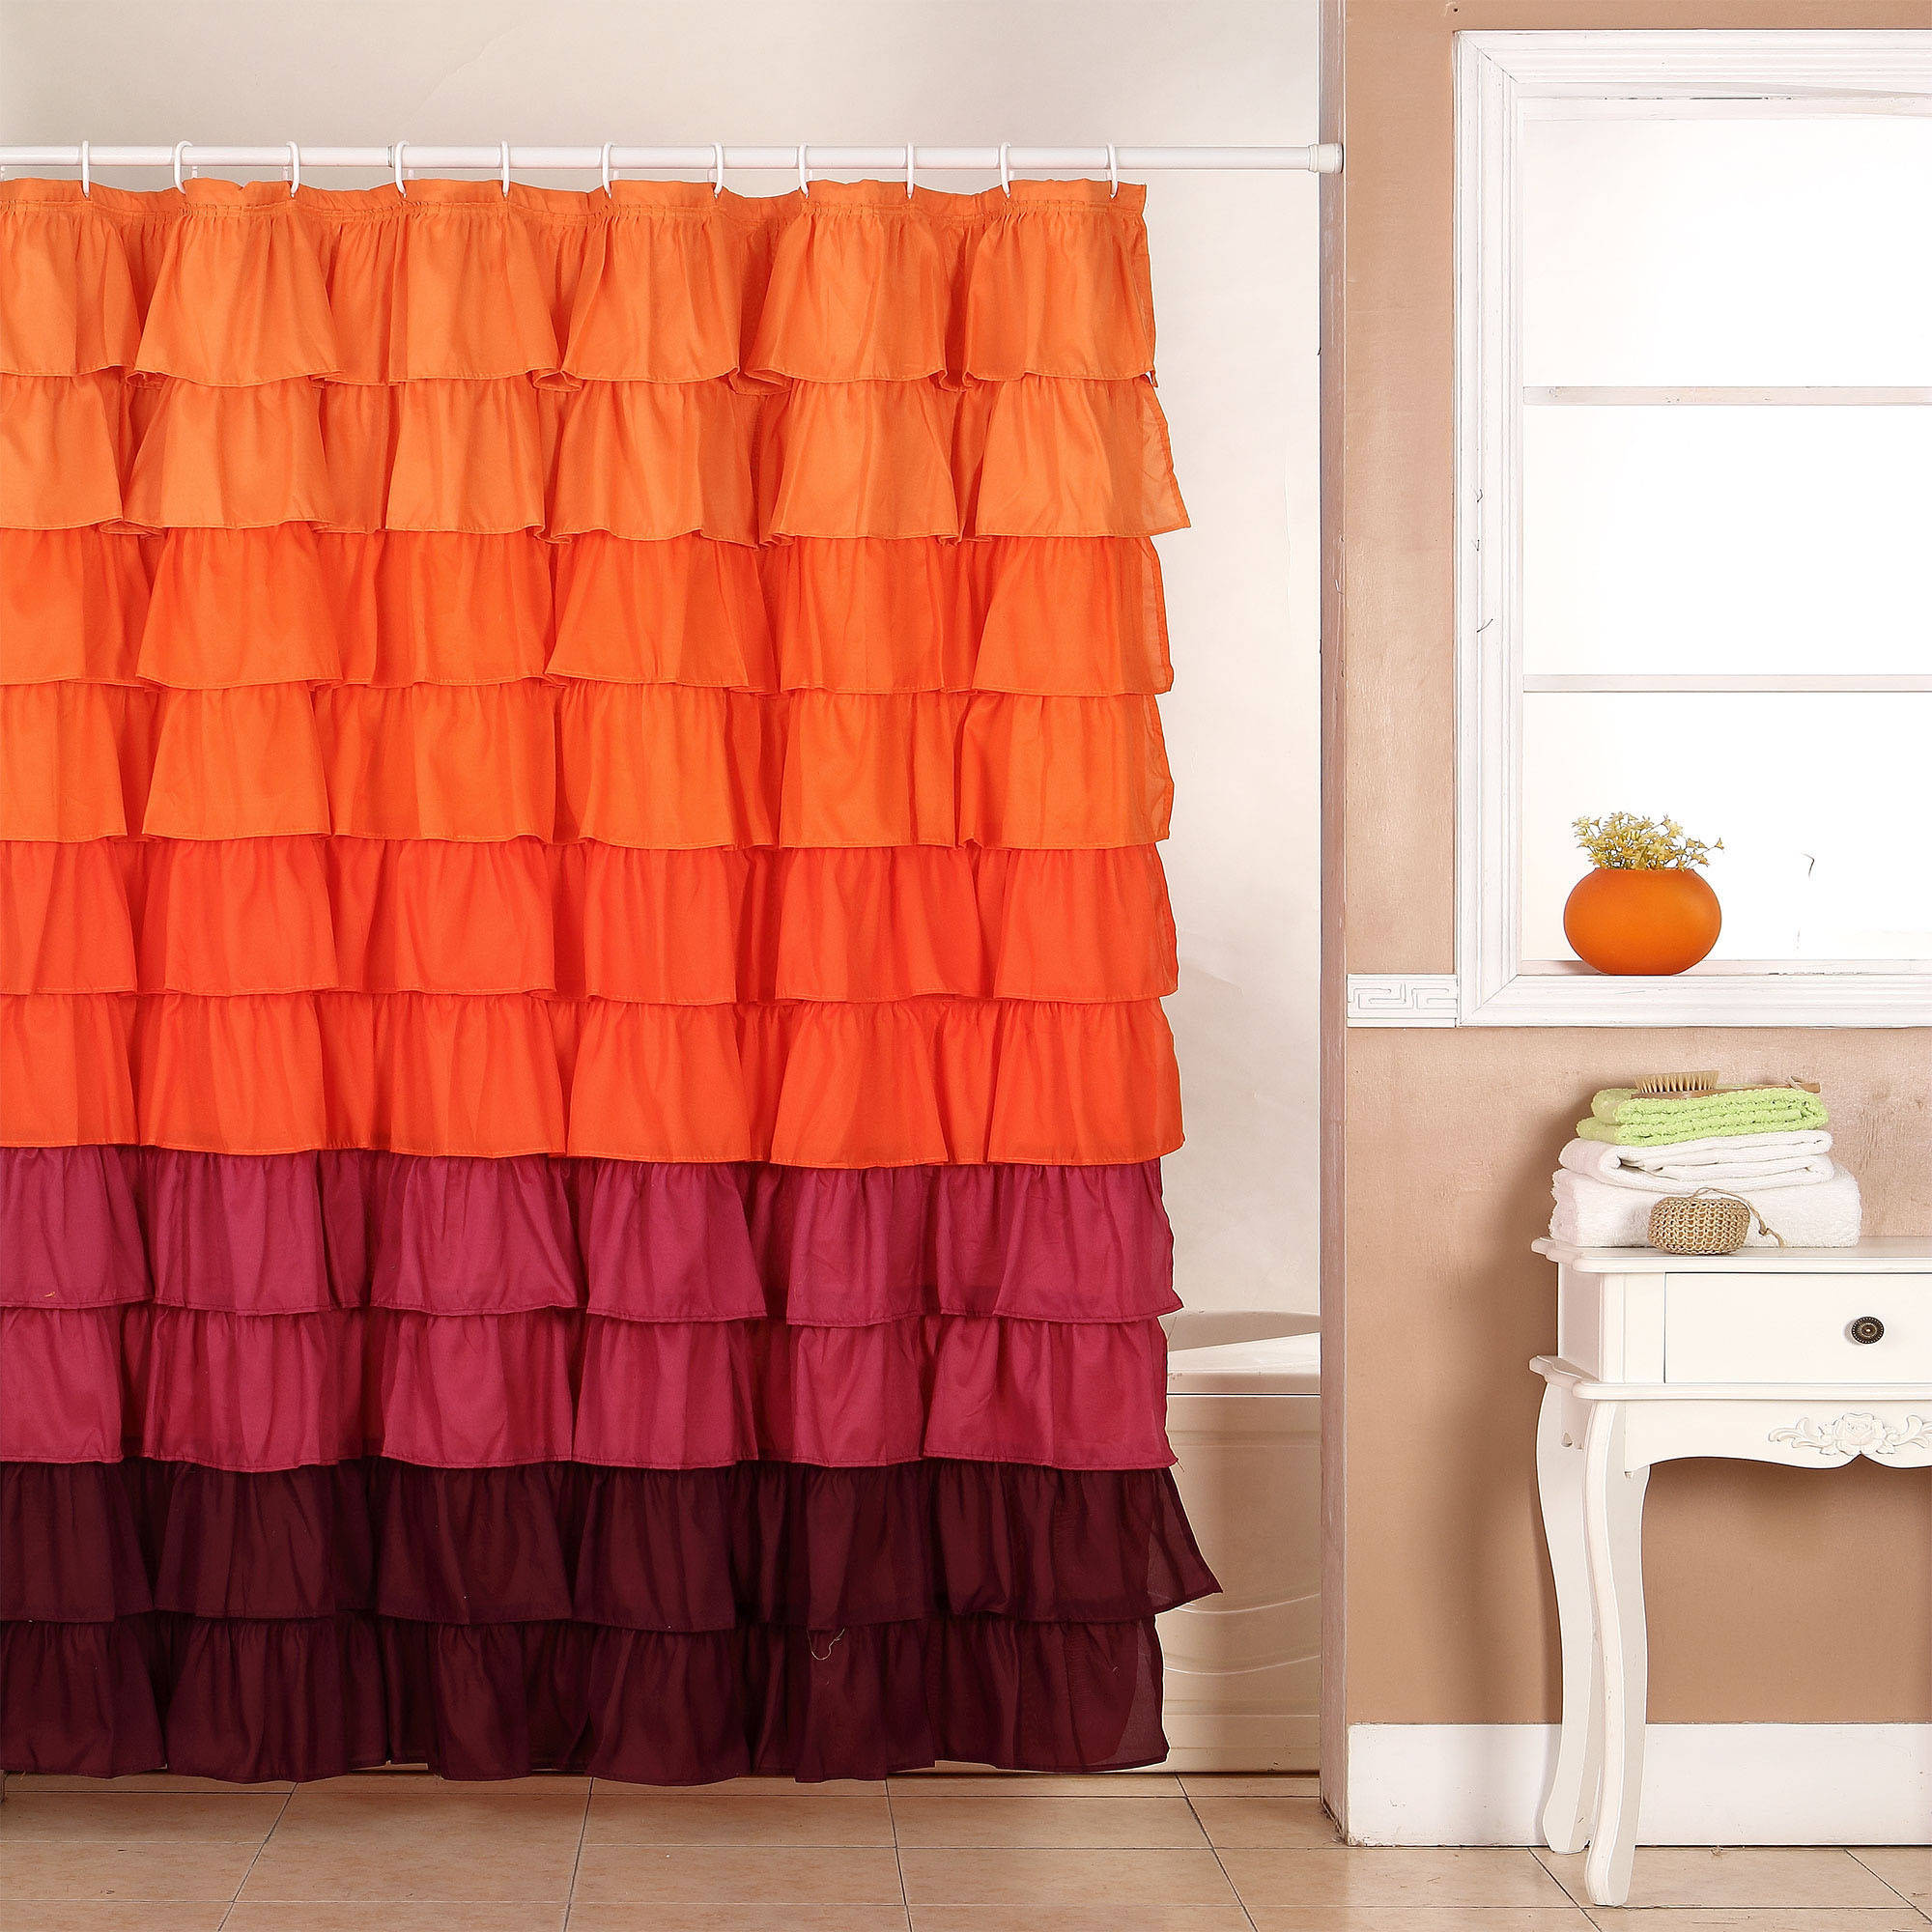 Somerset Harvest Ruffle Home Shower Curtain with Buttonholes